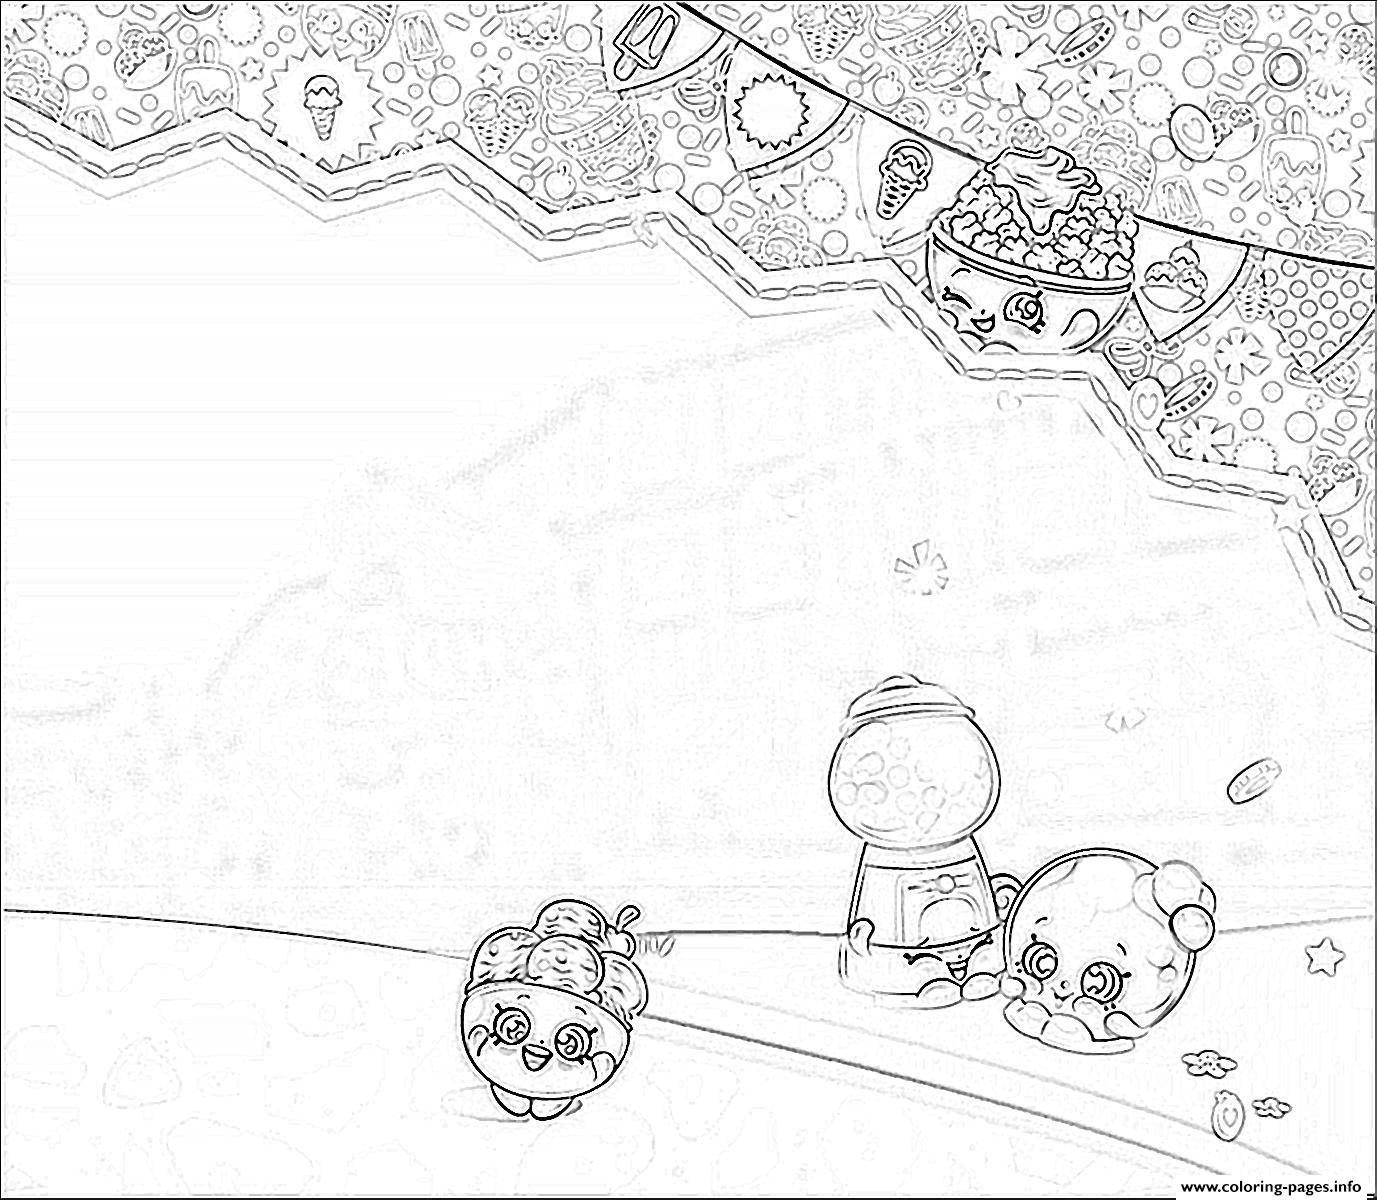 Shopkins World Background Coloring Pages Printable